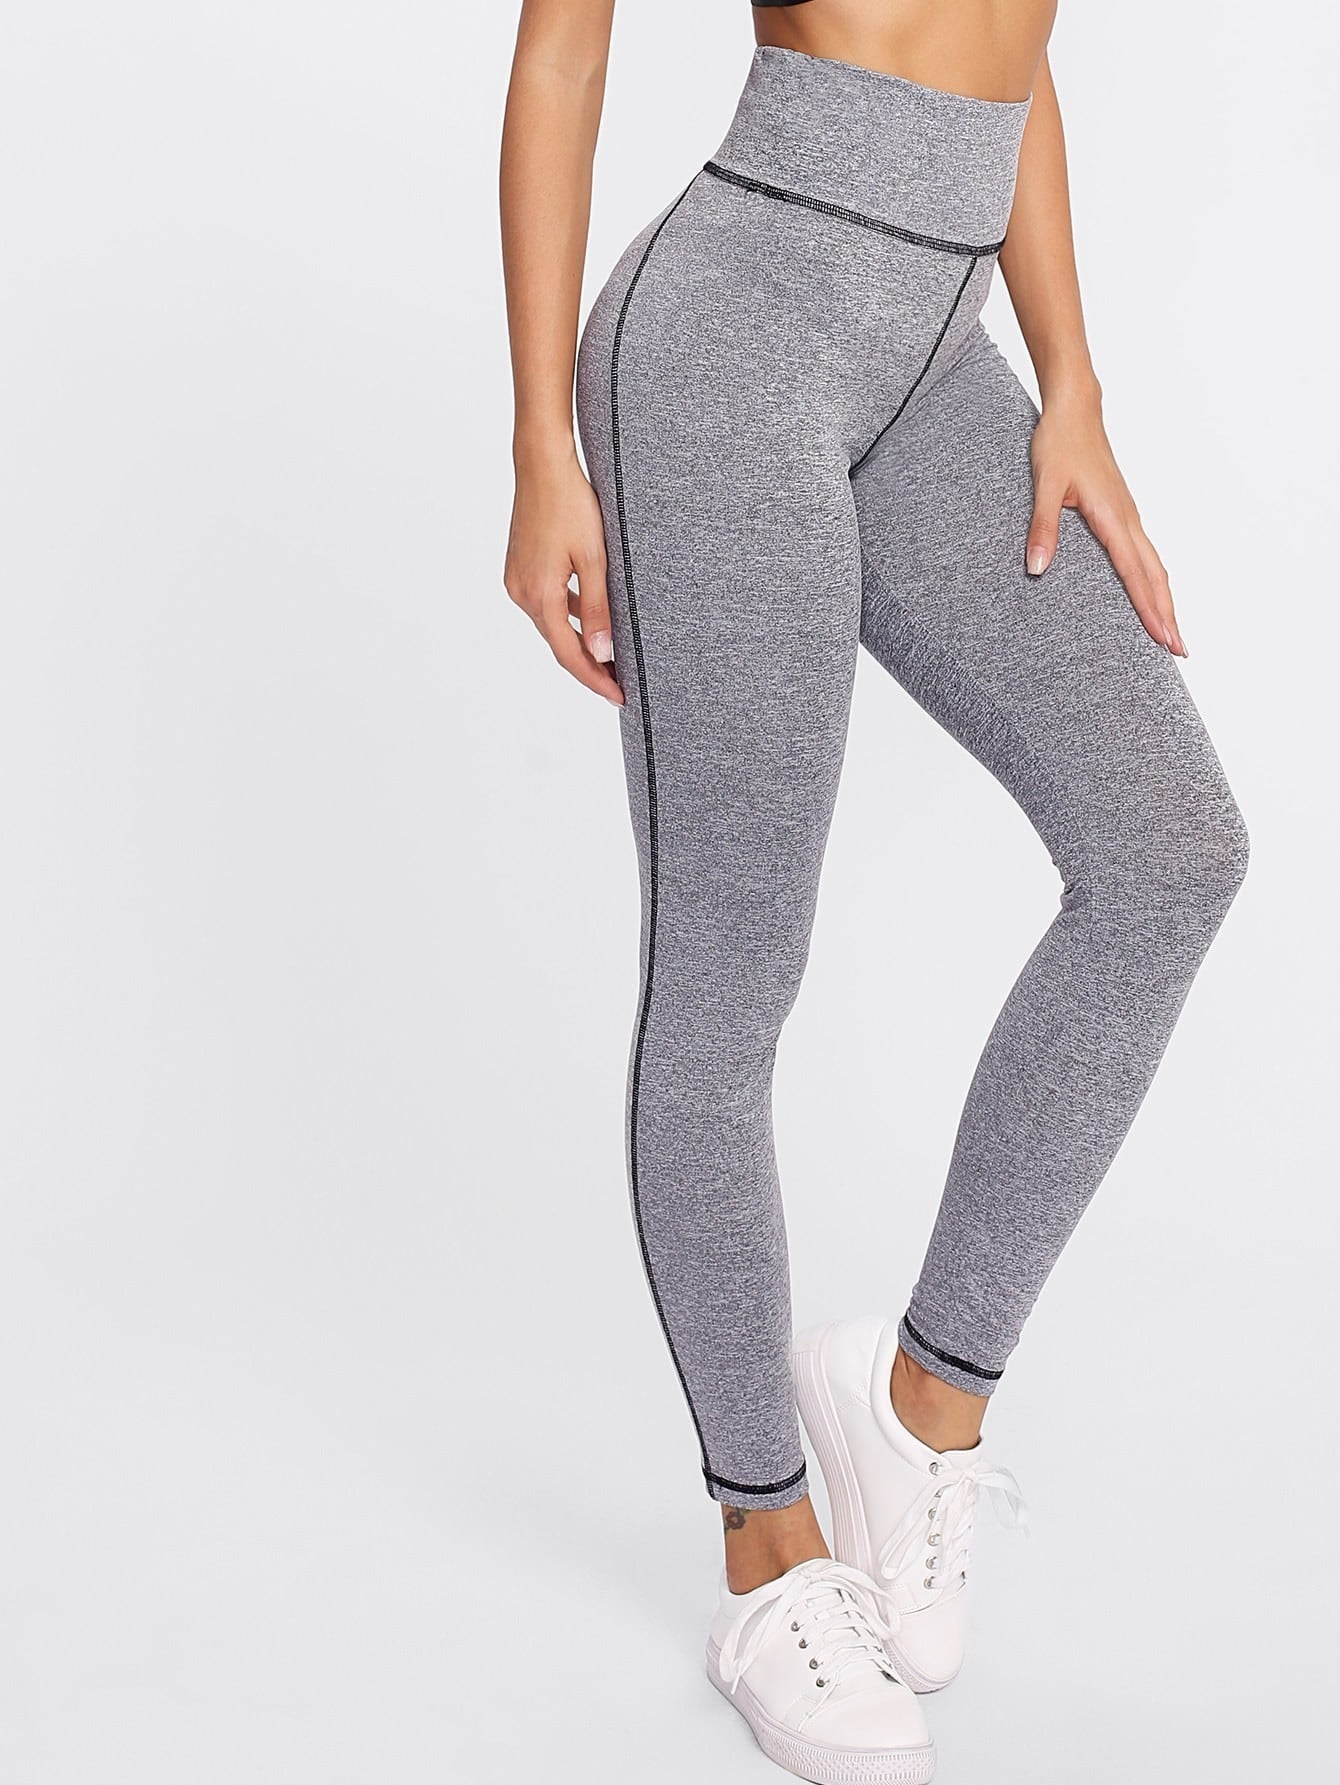 Find great deals on eBay for knit leggings. Shop with confidence.